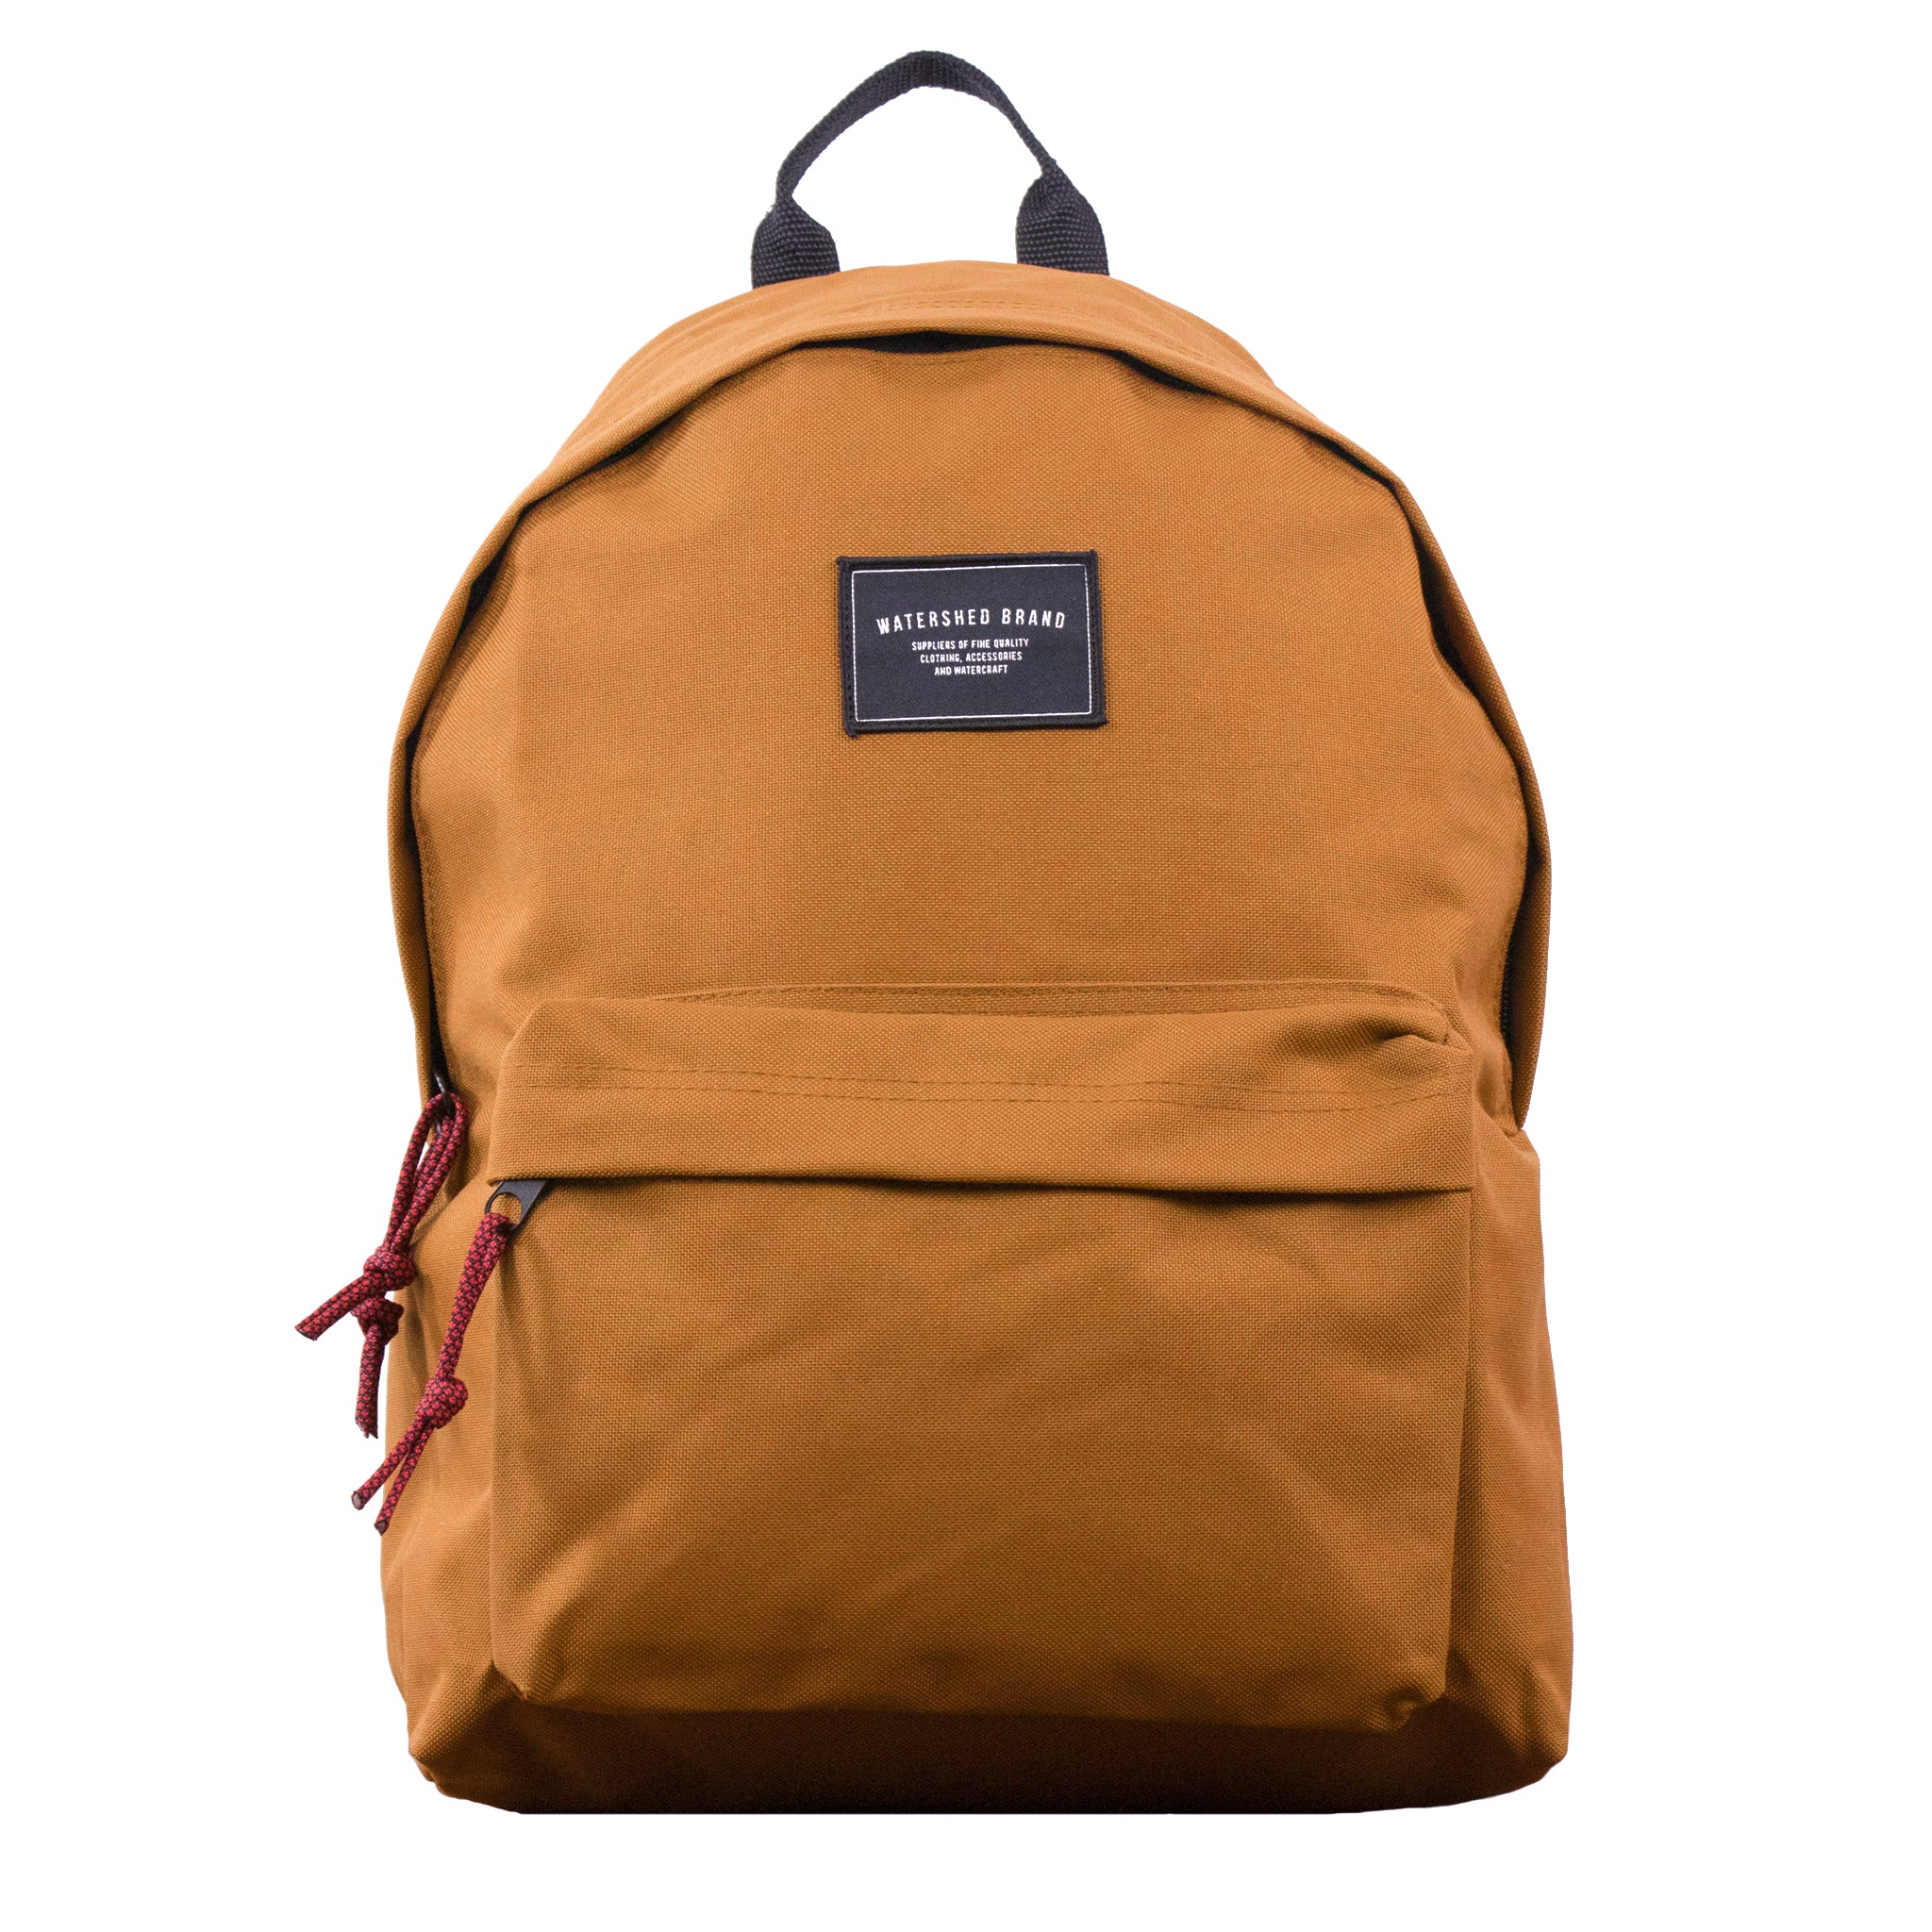 Watershed Union Backpack - Caramel